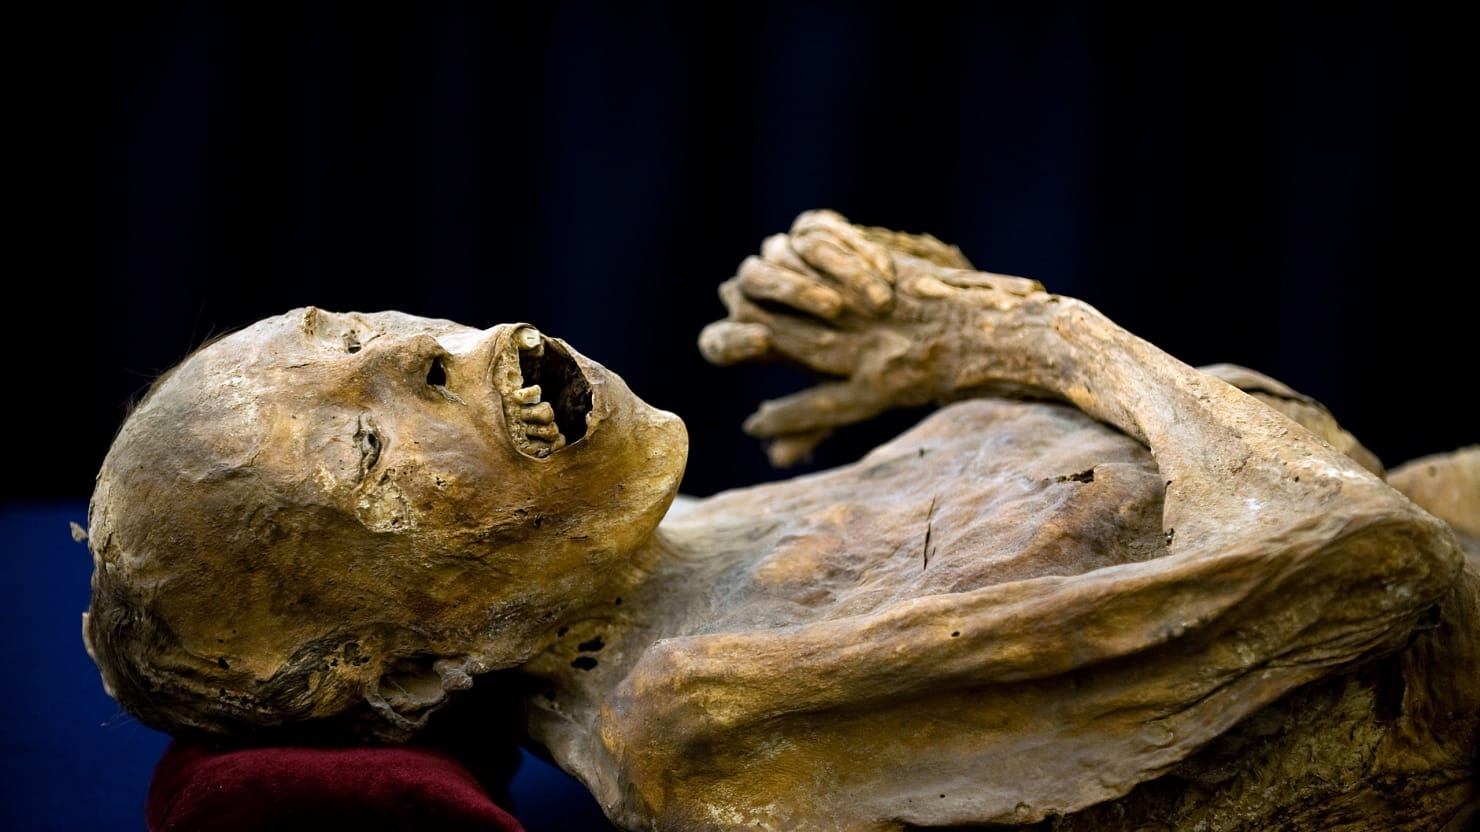 The Grisly Mummy Museum in Guanajuato, Mexico